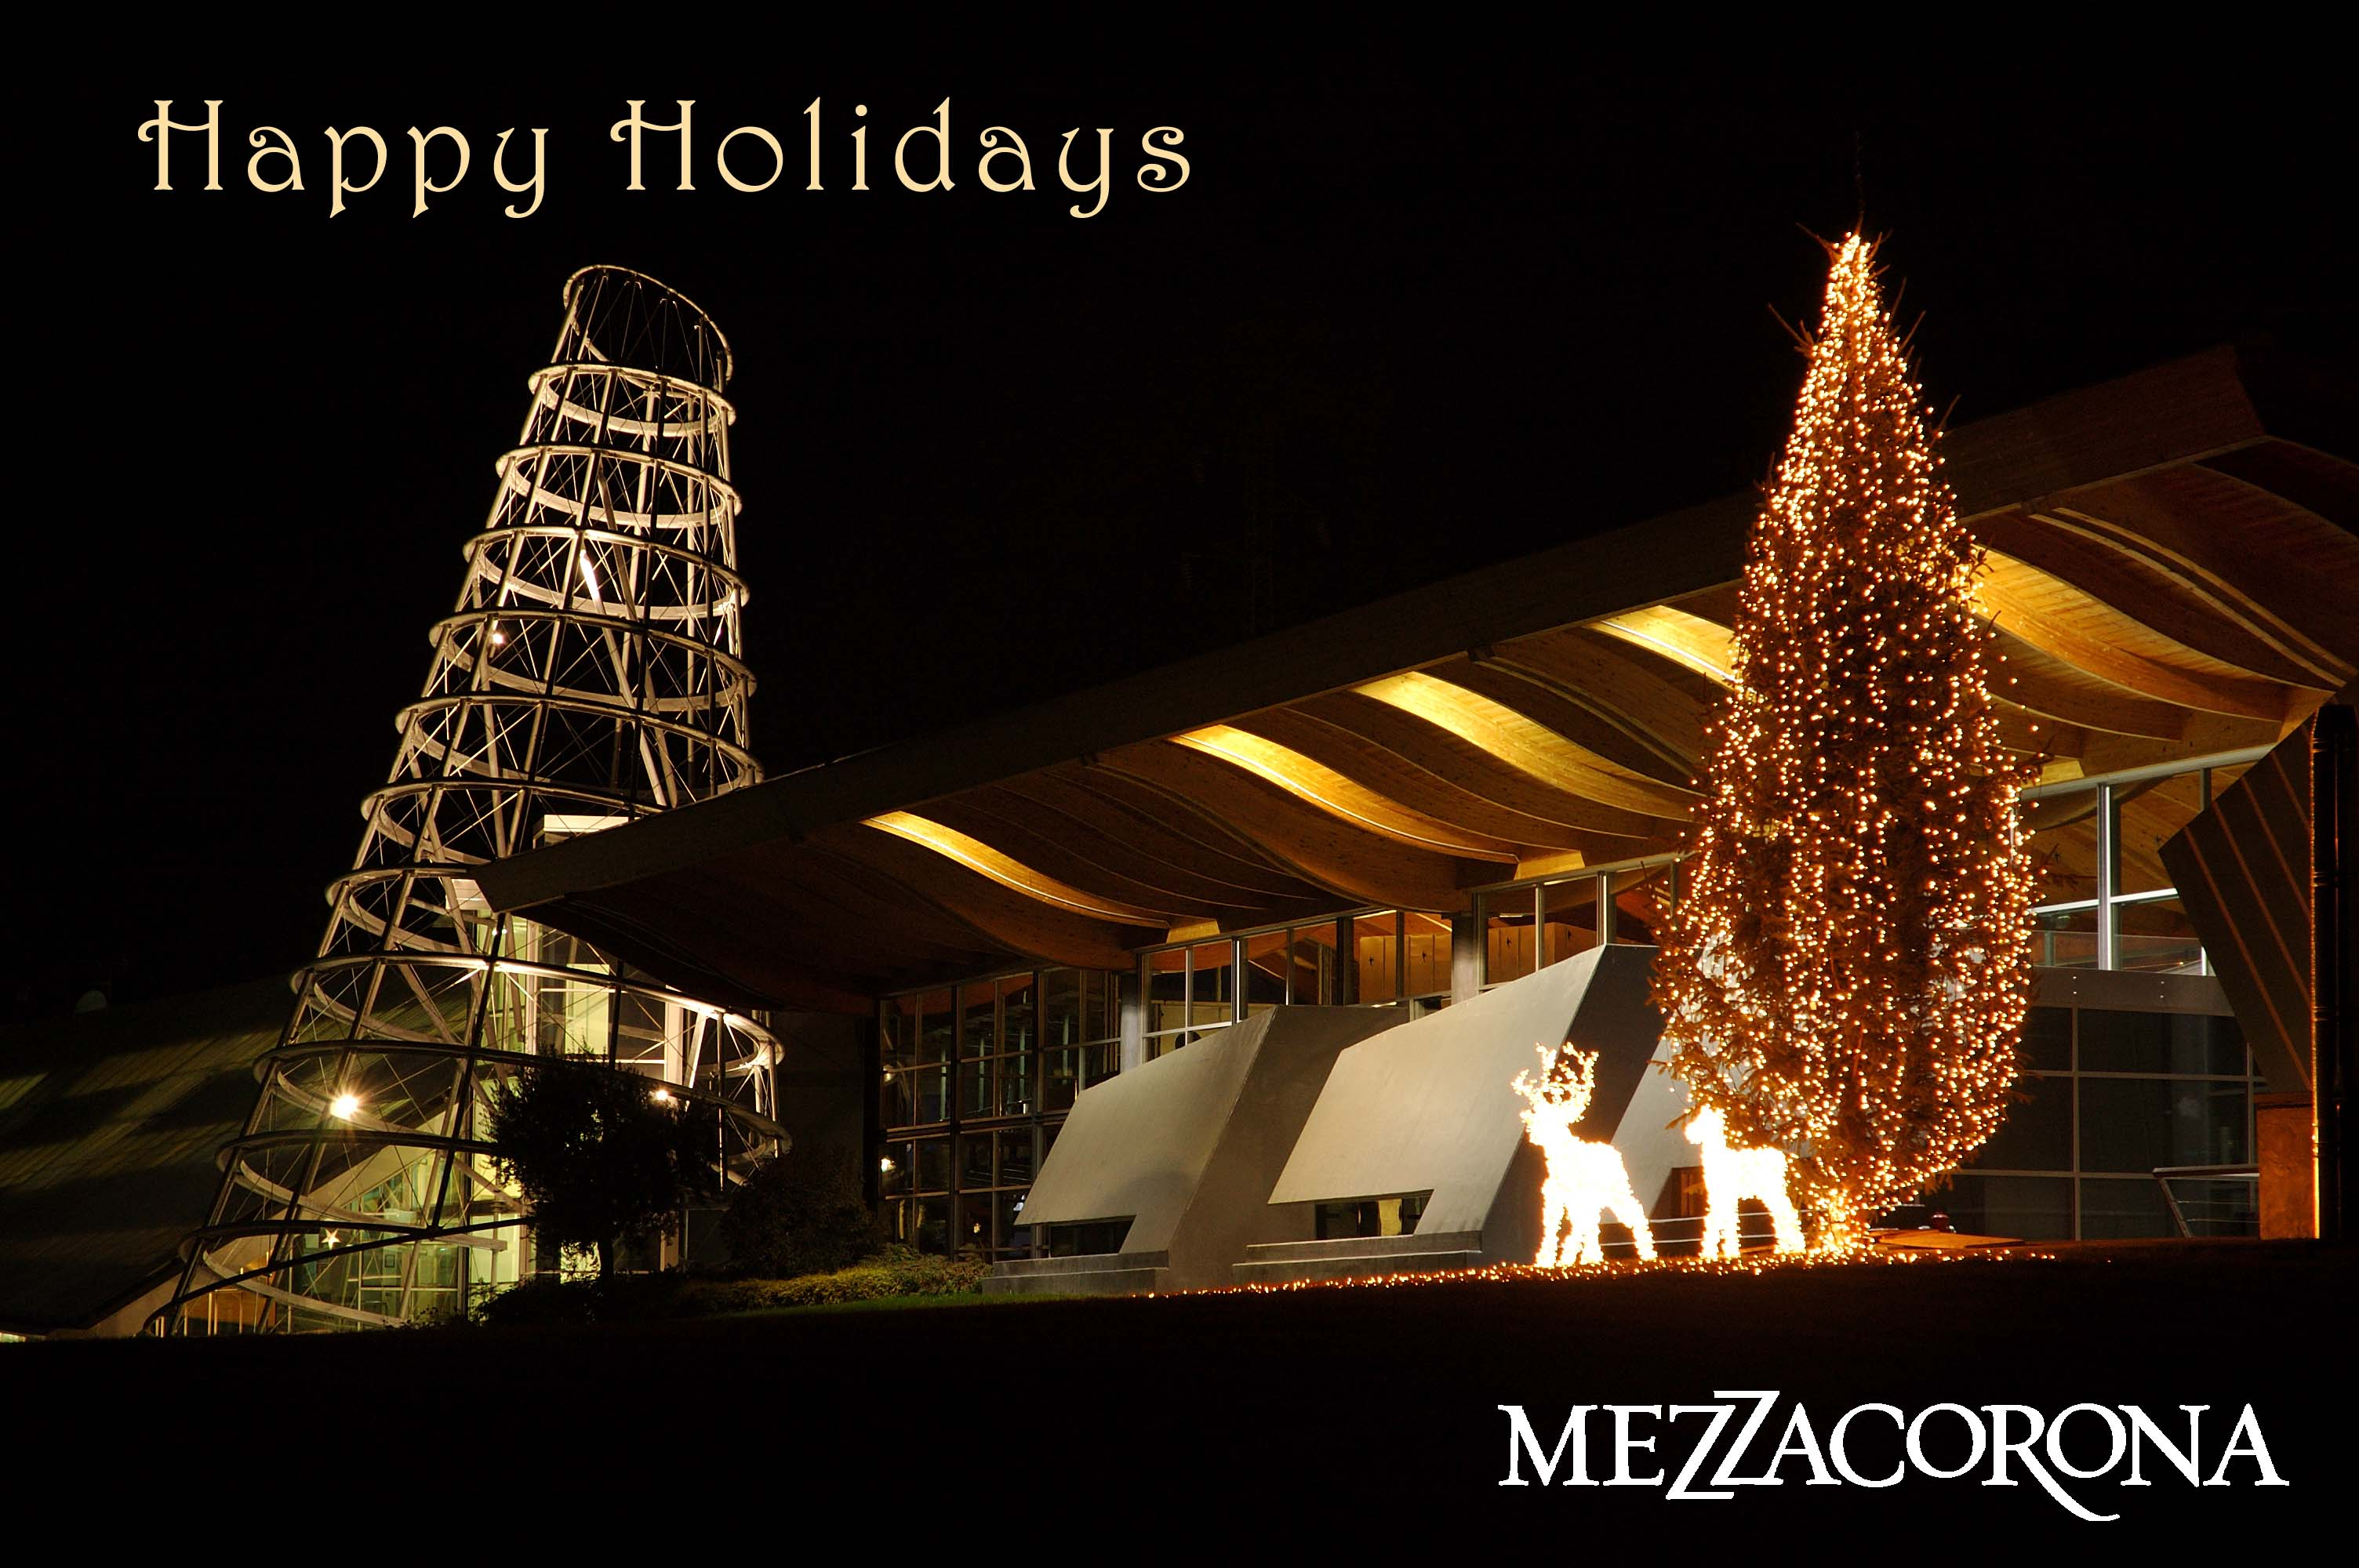 68_Happy Holidays from Mezzacorona - Copia